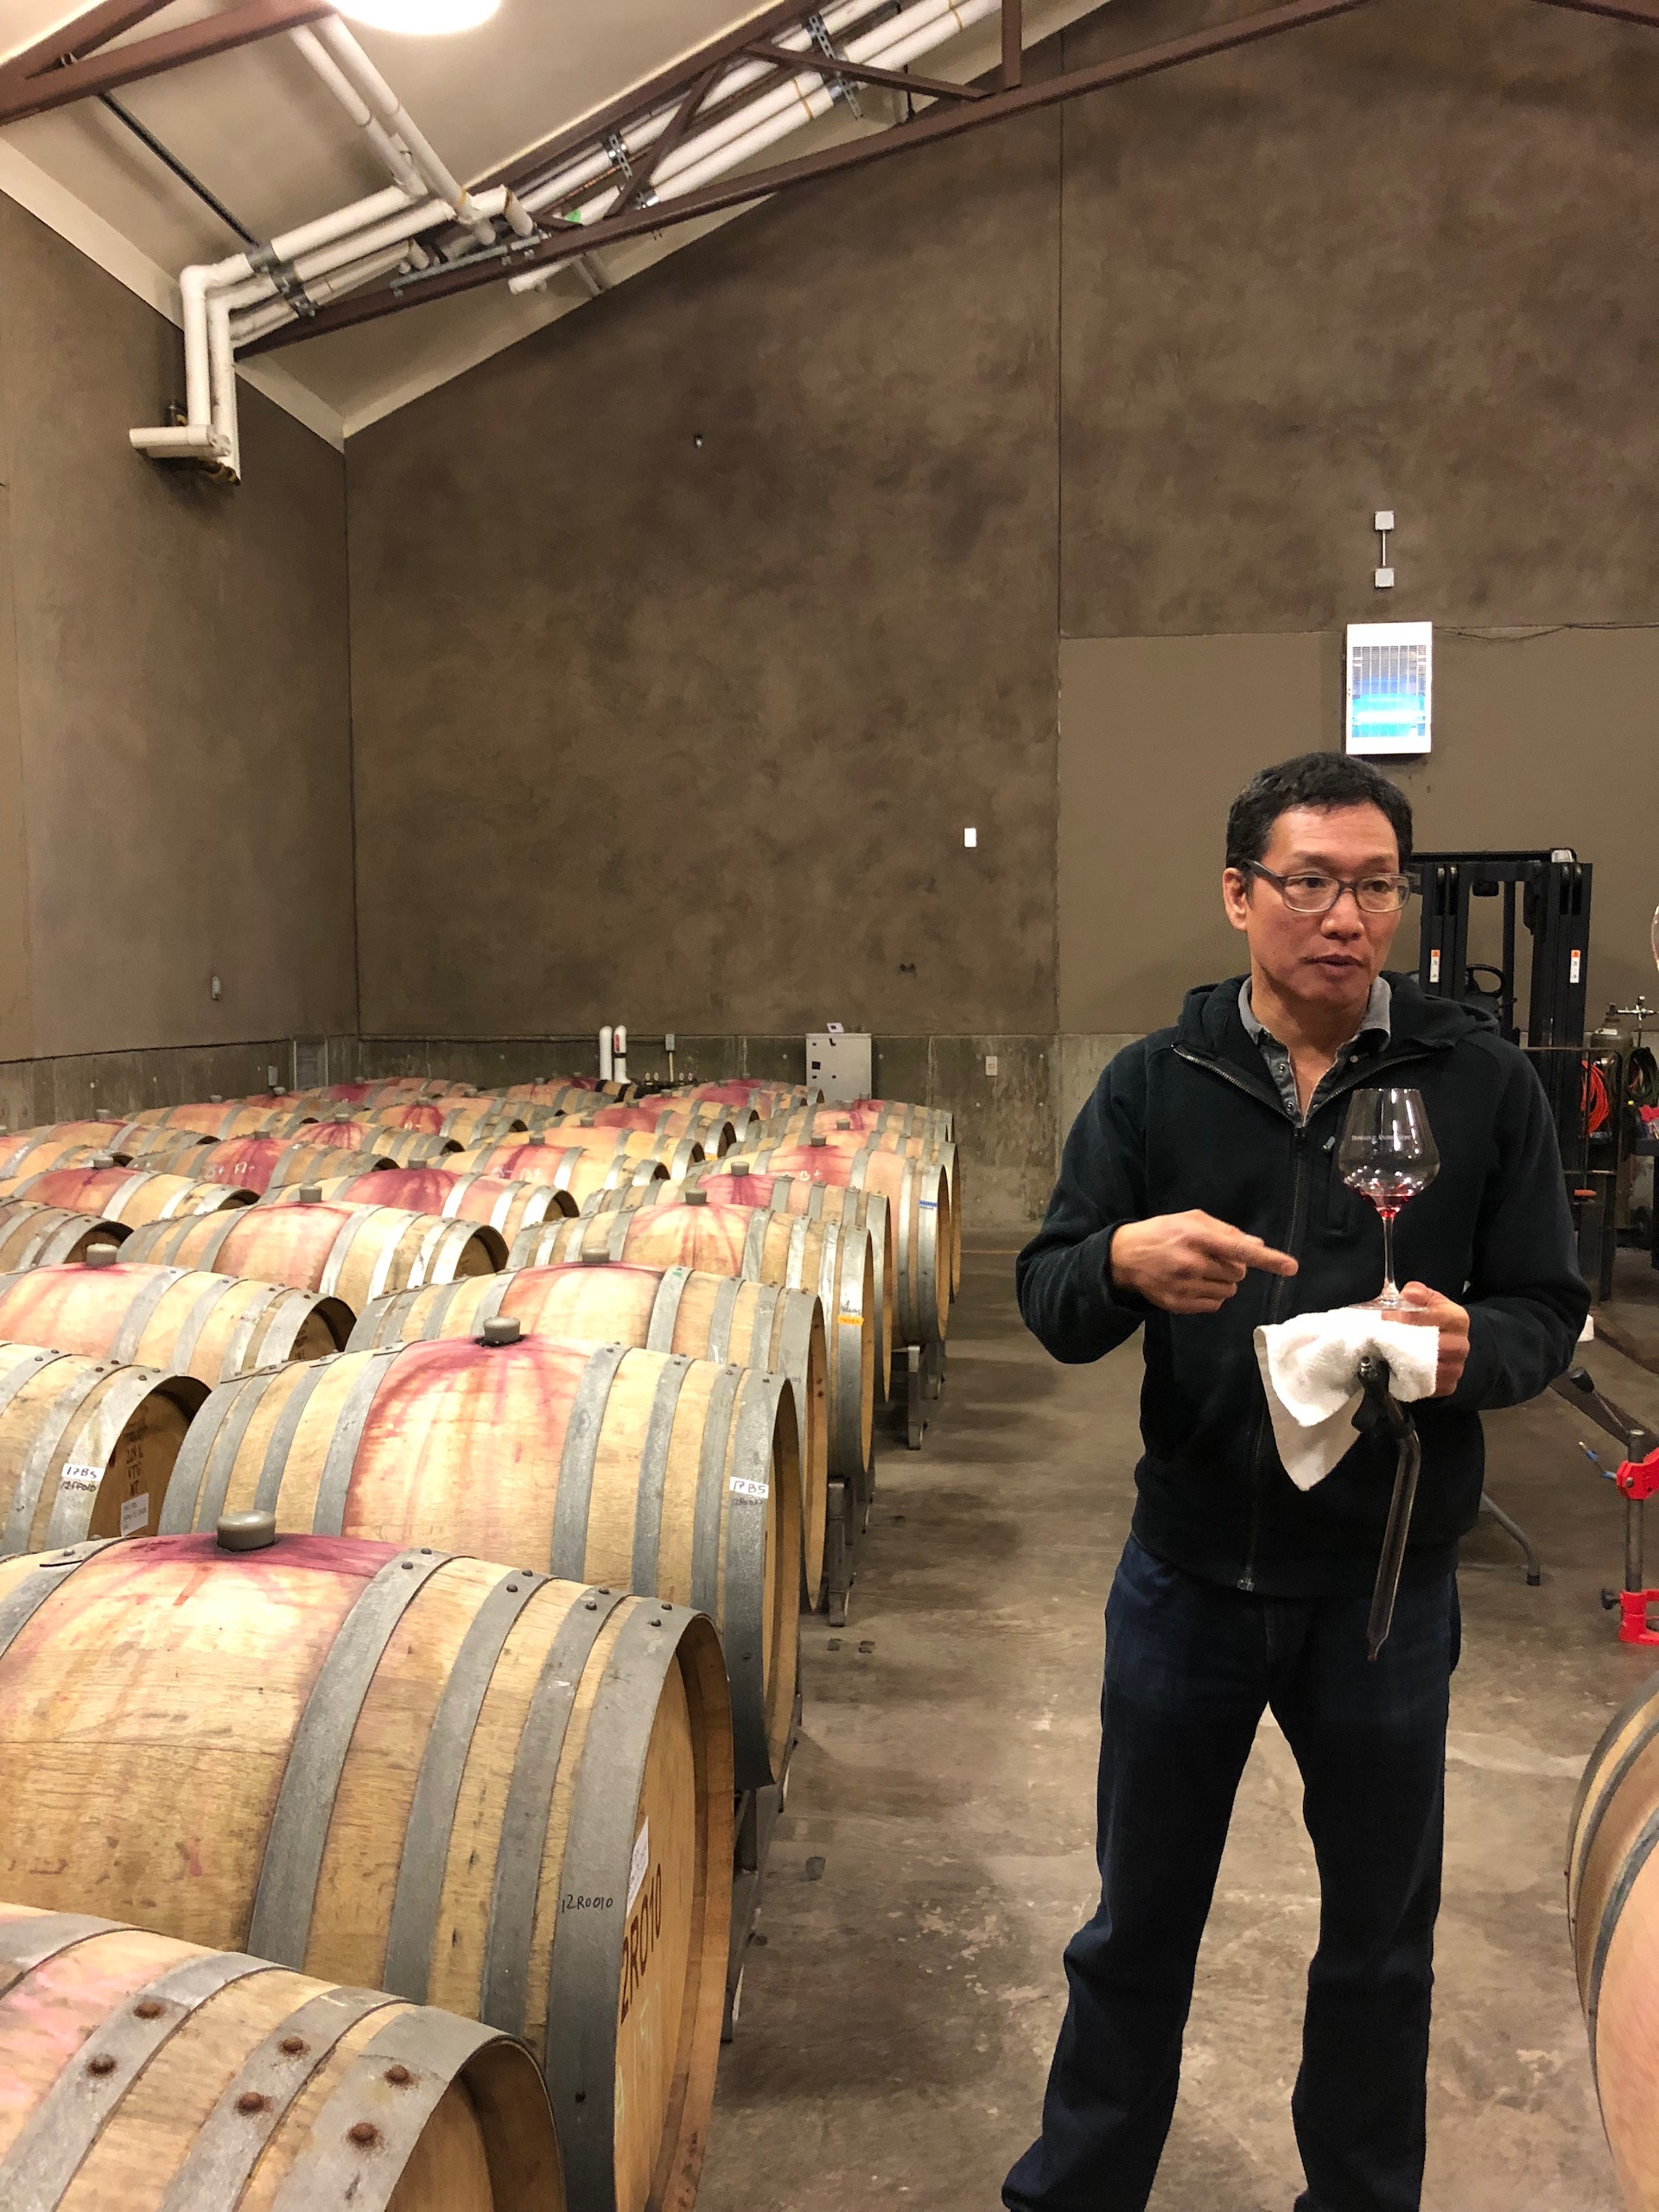 Domaine Anderson winemaker Darrin Low discusses the latest vintage